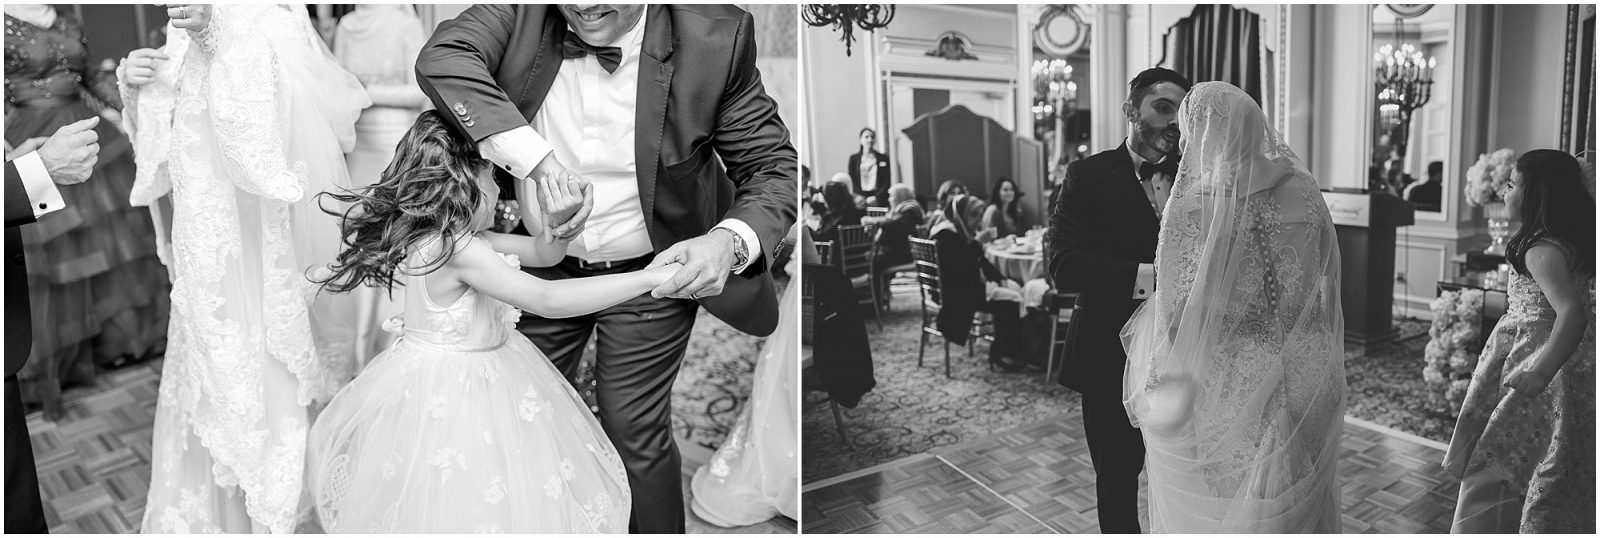 0102 Chateau Laurier Wedding - Hijabi Bride - Sireen & Anas- Ottawa_PhotosbyEmmaH.jpg